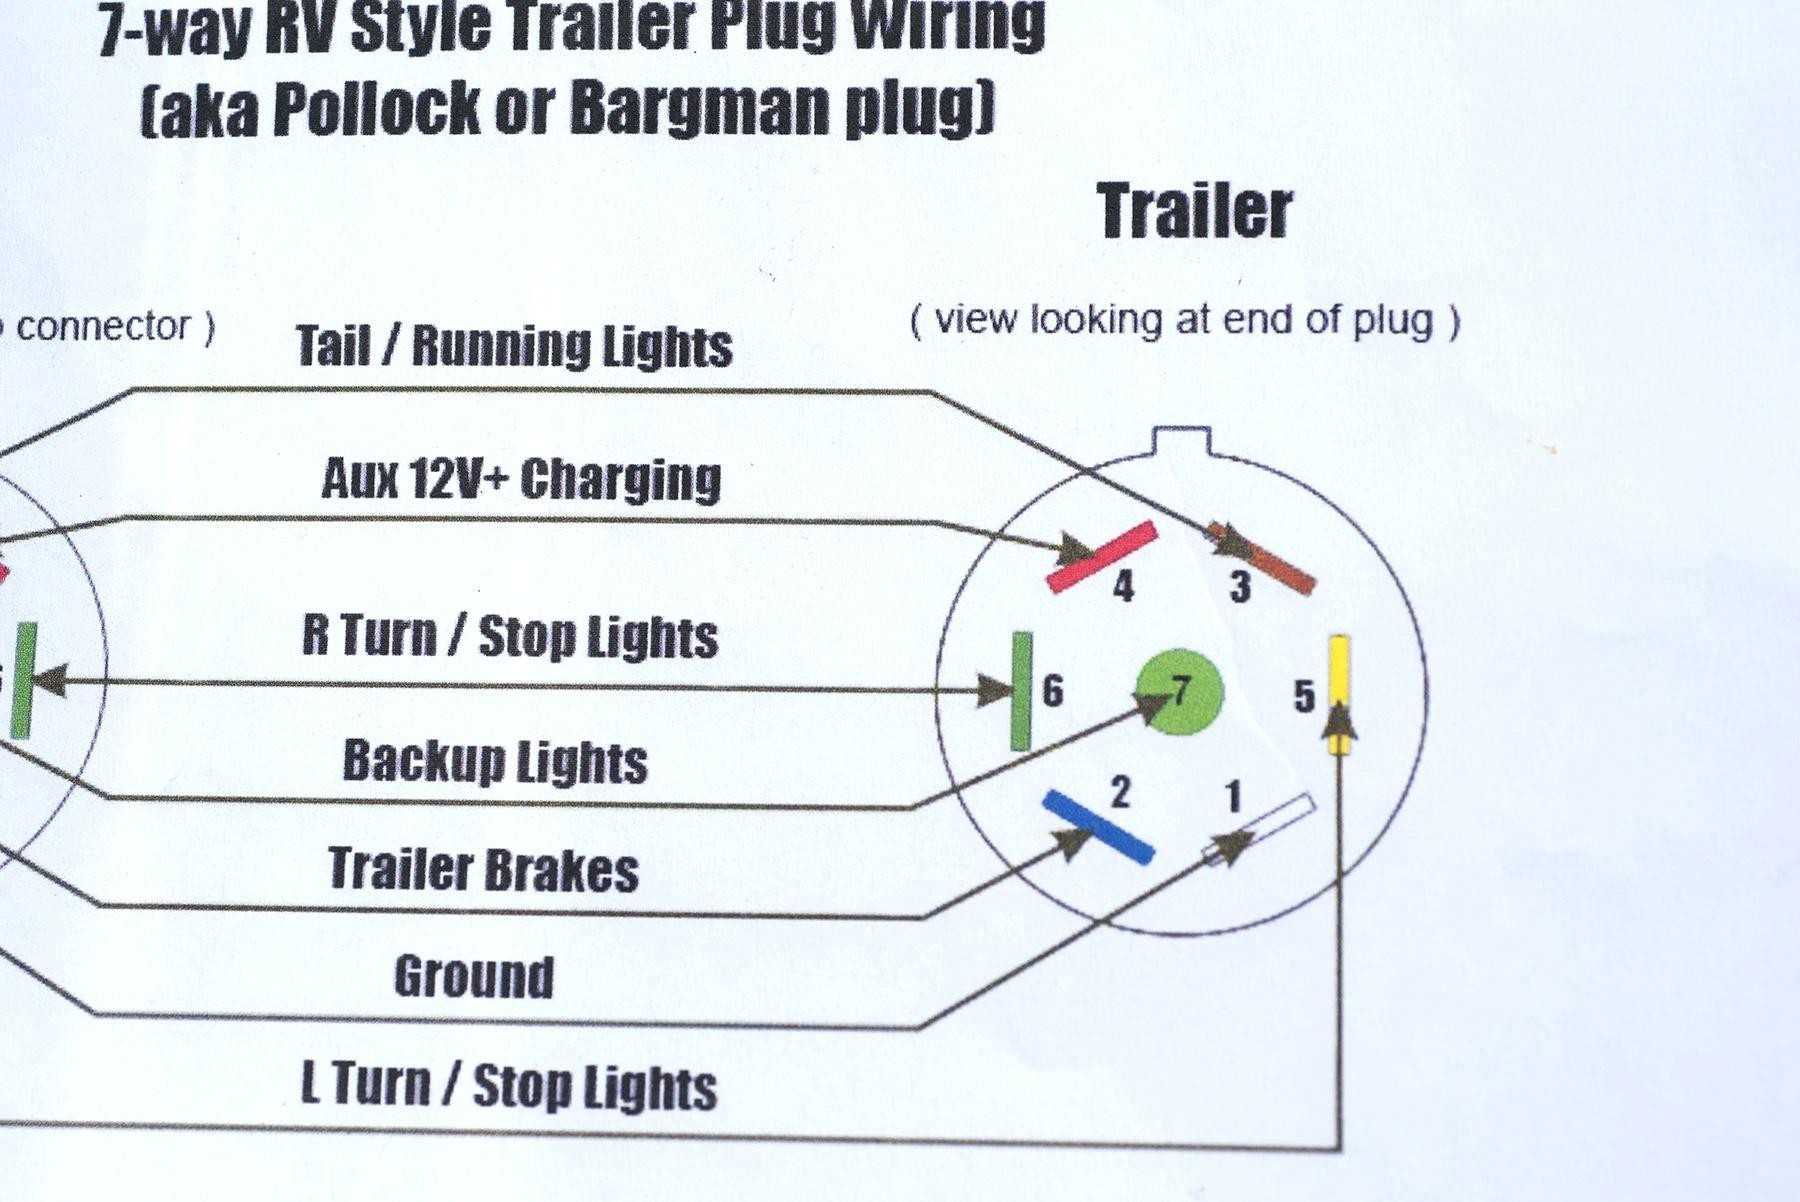 Trailer Wiring Diagram 4 Way Round - Detailed Wiring Diagram - 4 Pin Trailer Wiring Diagram Round